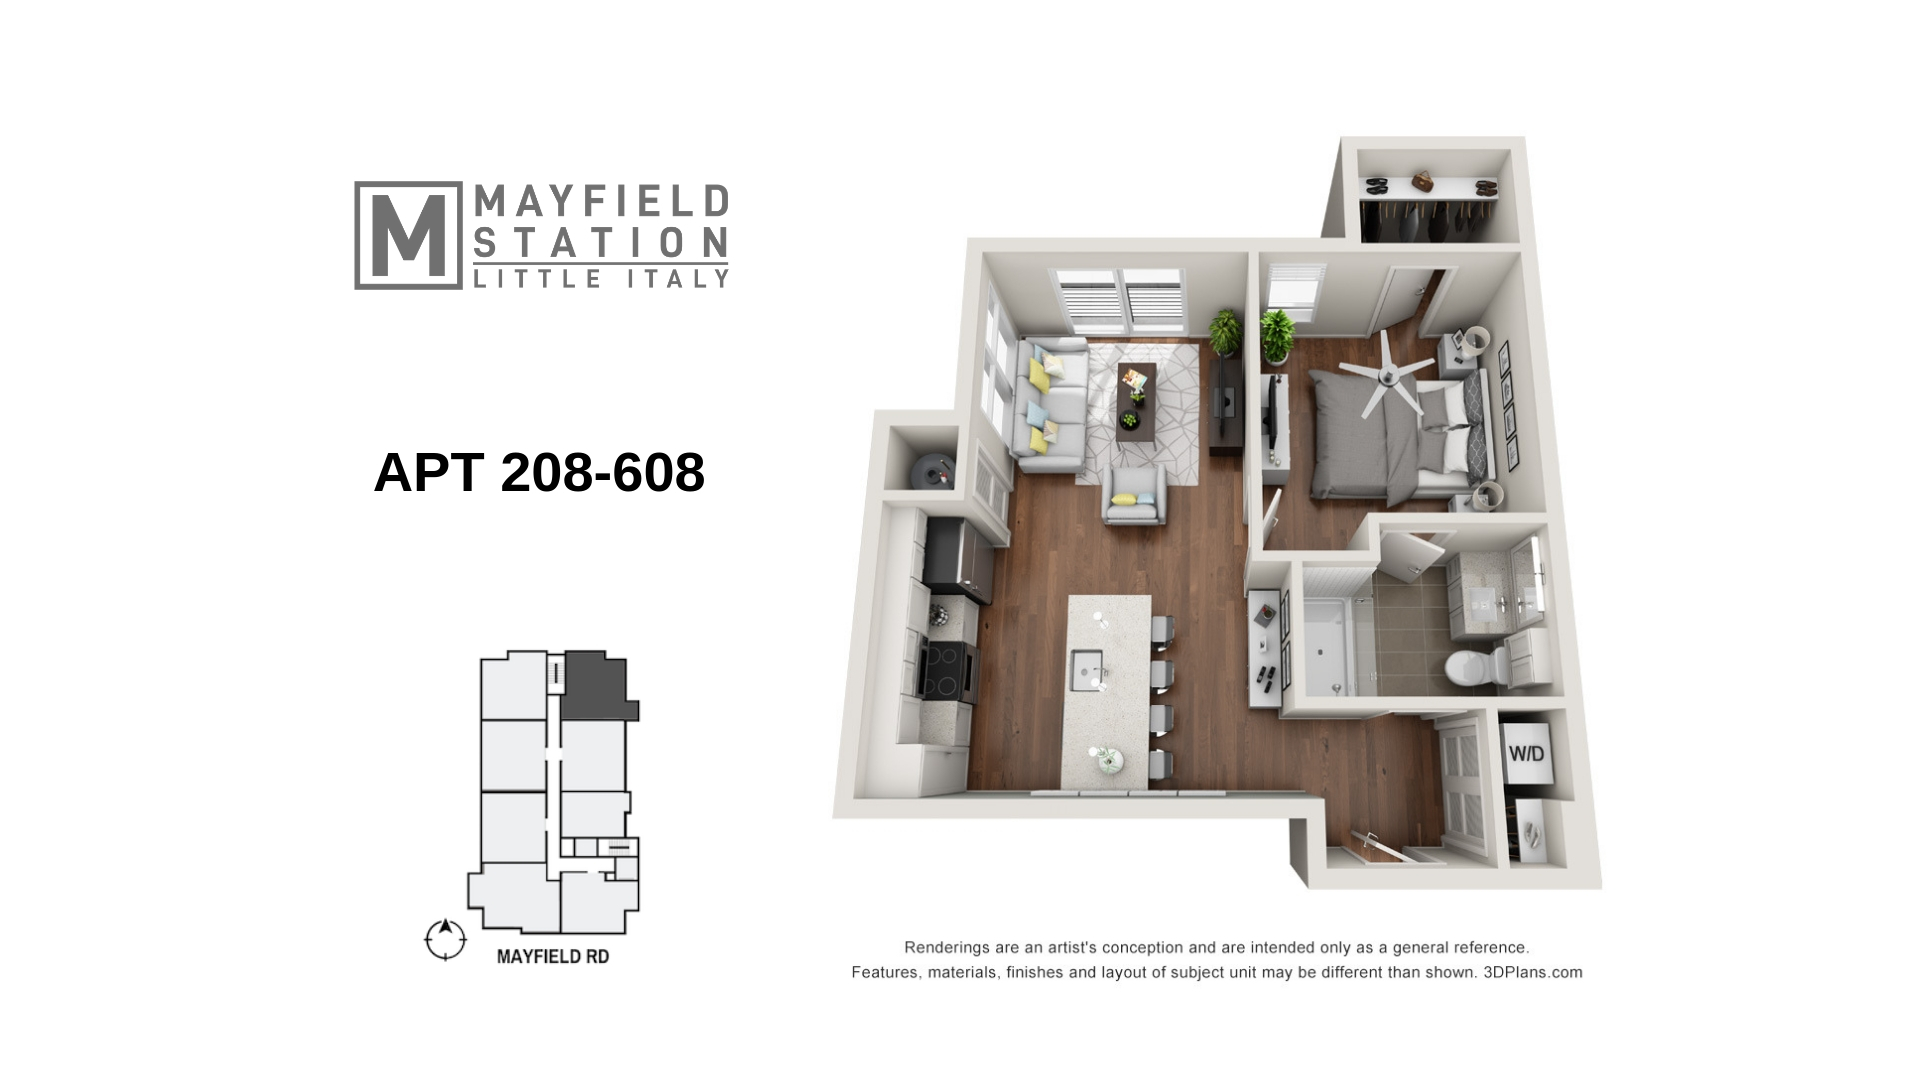 Mayfield Station Apartments - Floorplan - APT 208-608